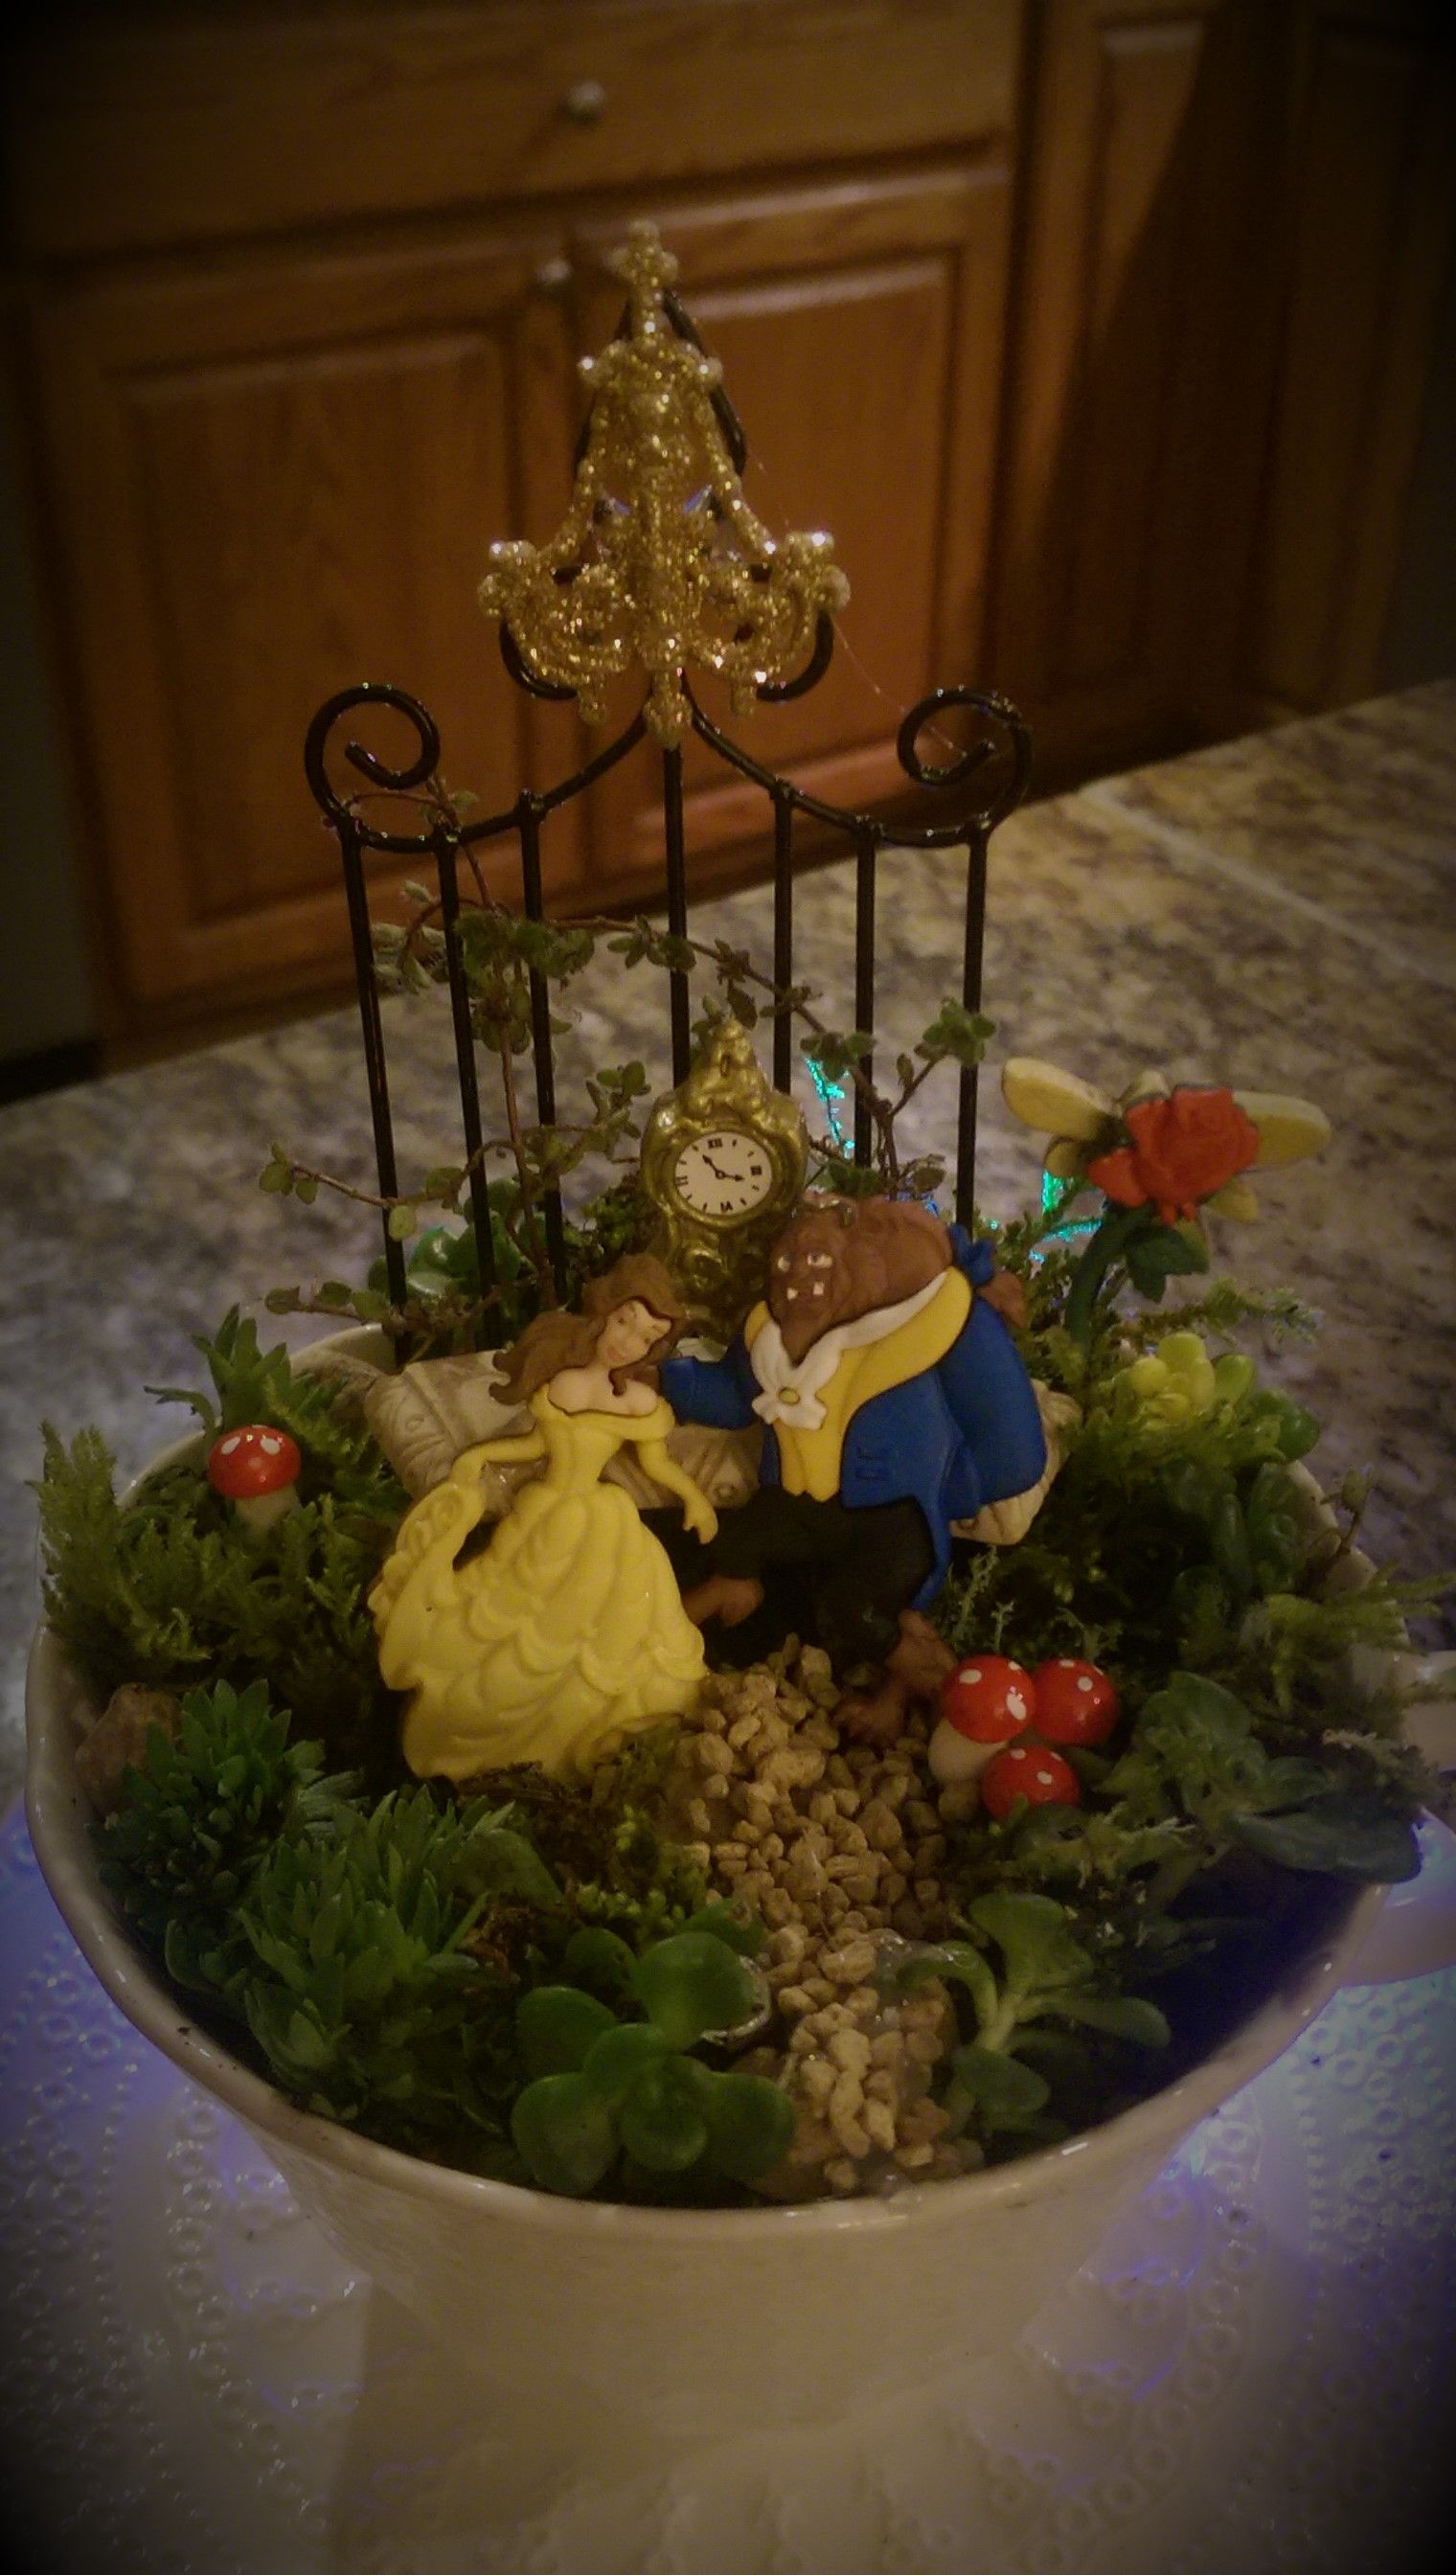 Beauty And The Beast Mini Teacup Garden.